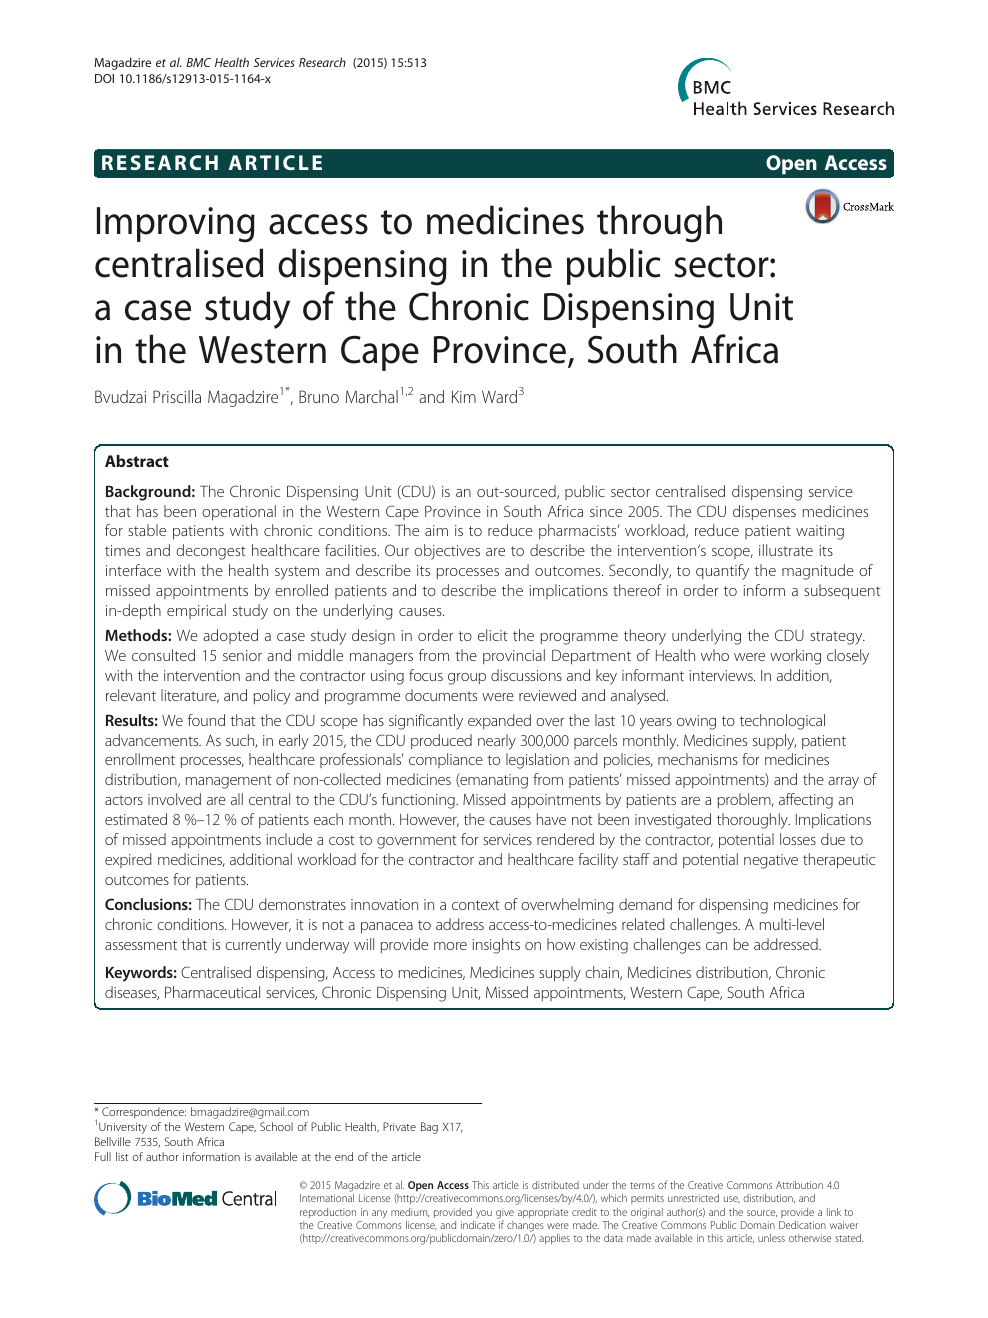 Improving access to medicines through centralised dispensing